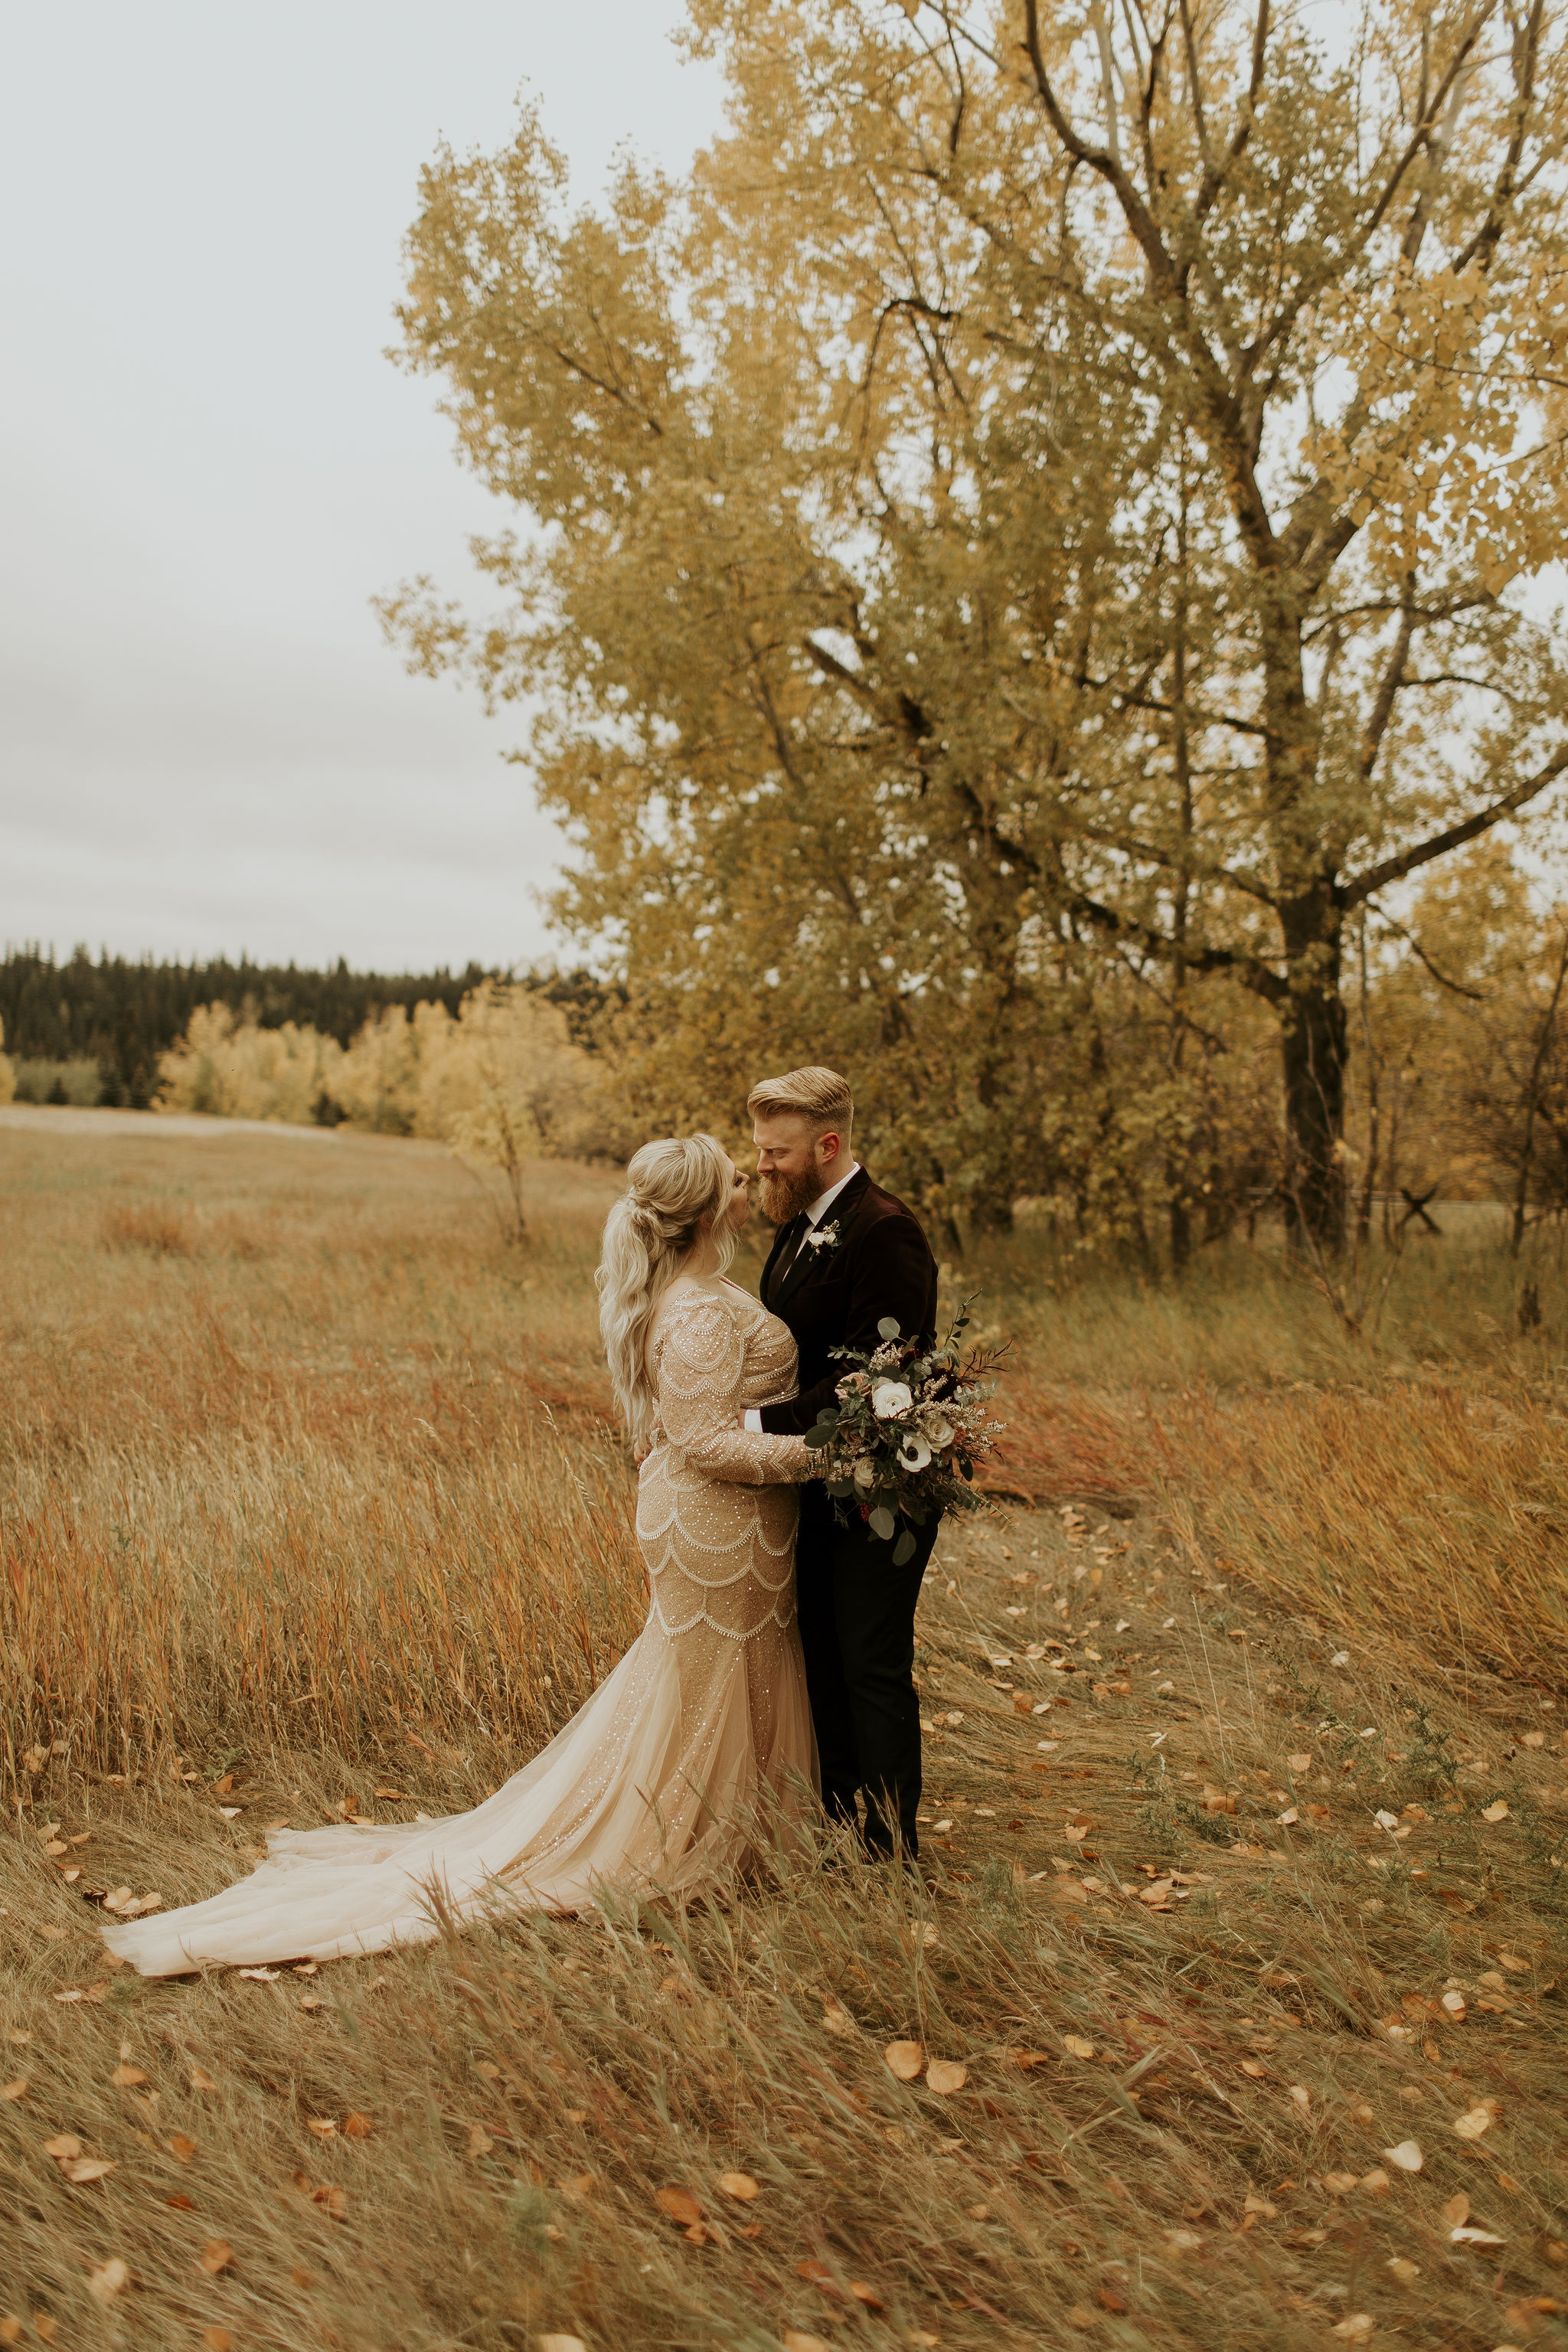 CA_Wedding_Portraits-74.jpg